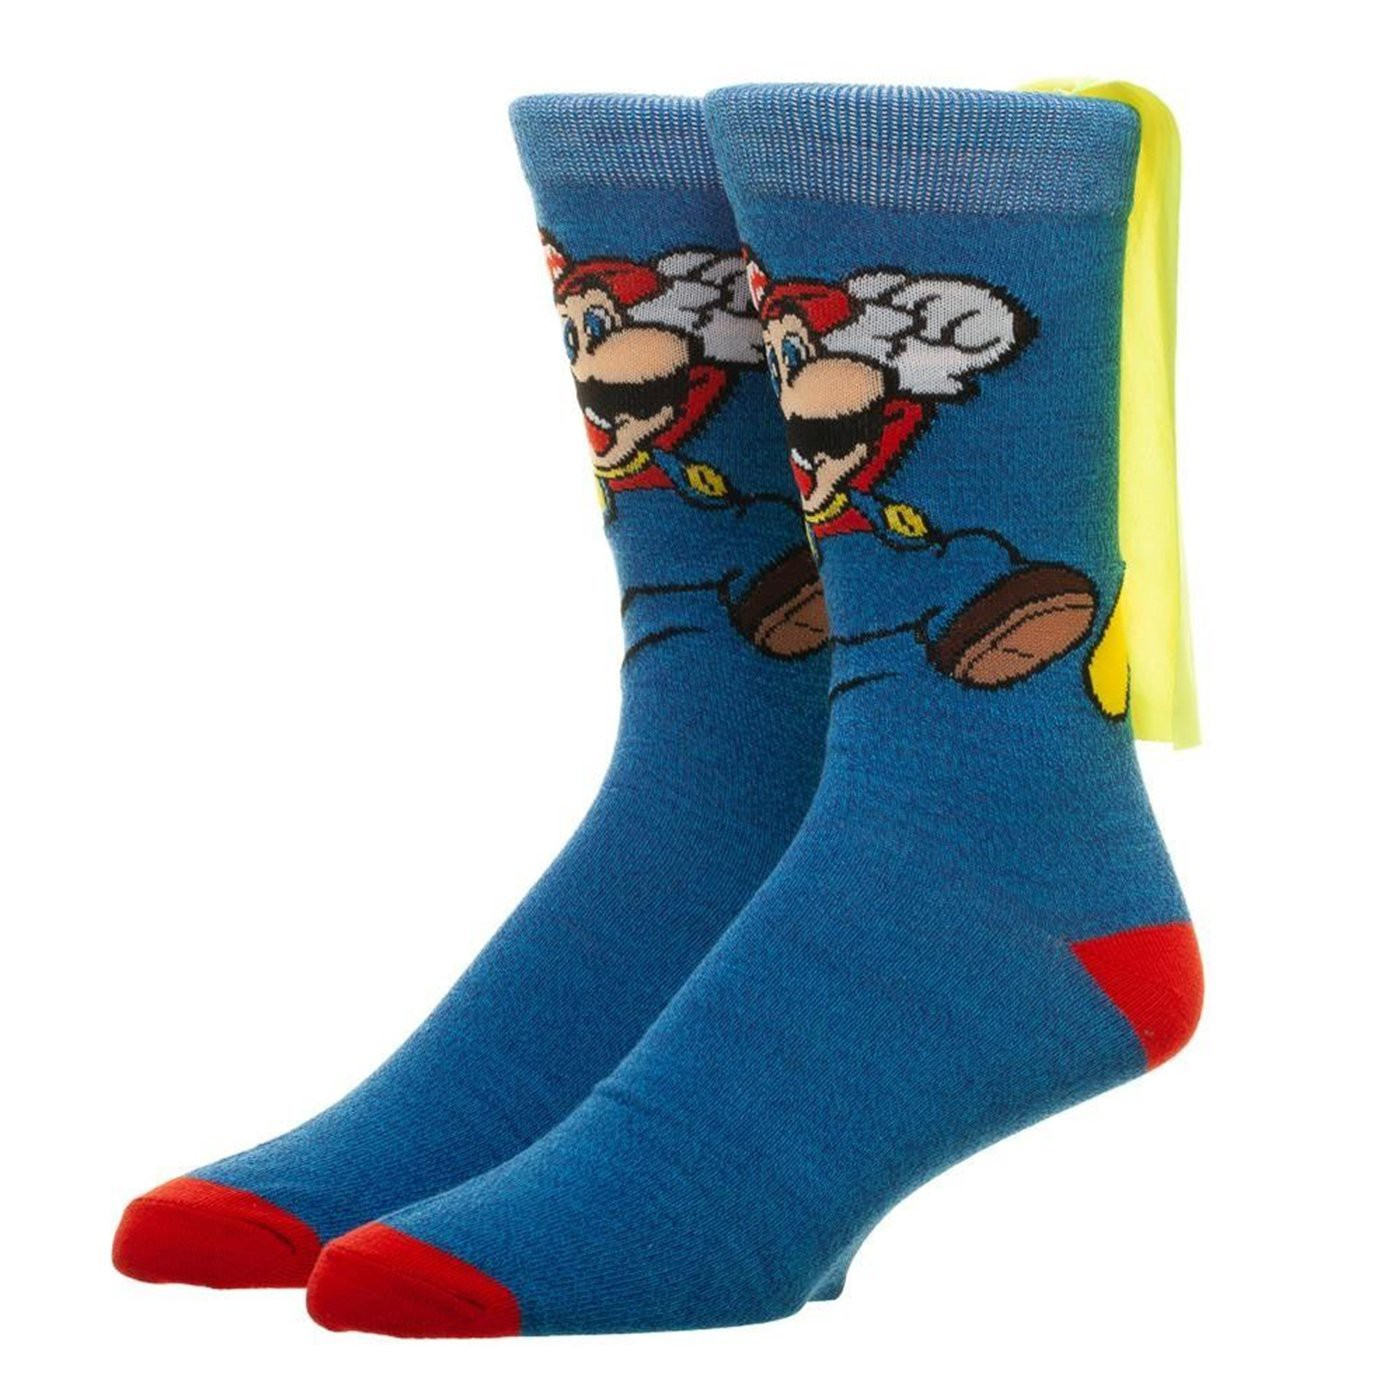 Nintendo Super Mario Brothers Caped Socks